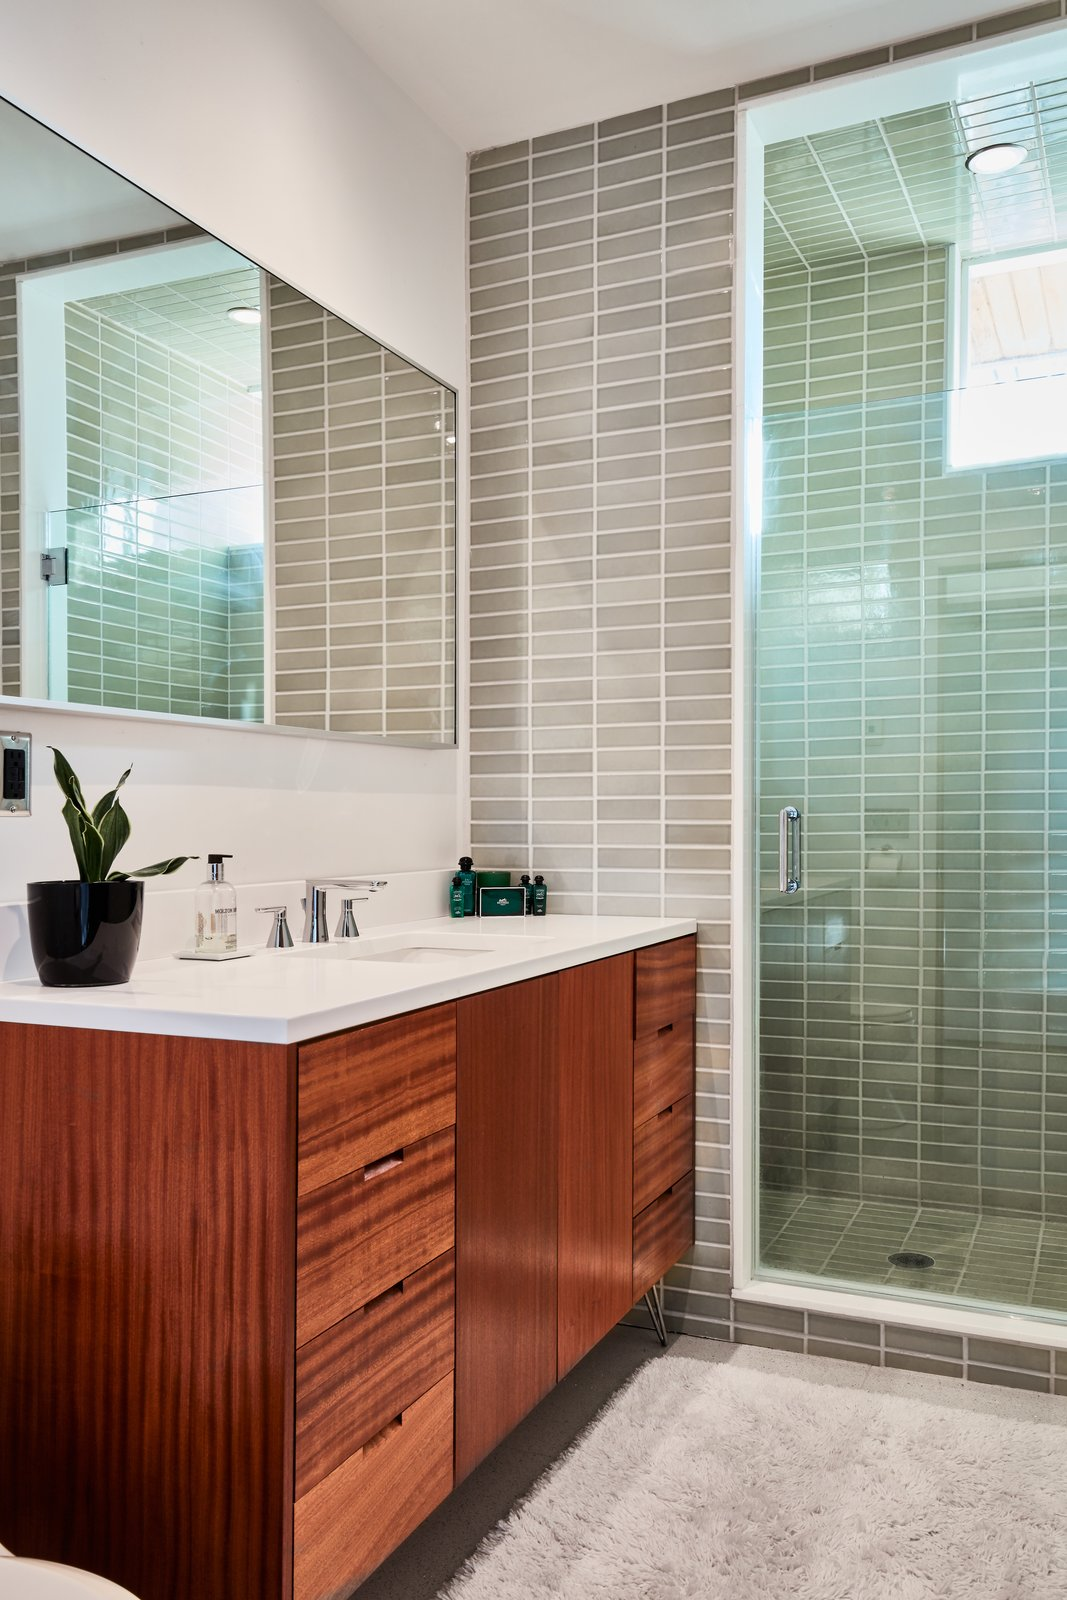 Tagged: Bath Room, Undermount Sink, and Enclosed Shower.  Photo 12 of 13 in The Stunningly Restored Hassrick Residence by Richard Neutra Hits the Market at $2.2M